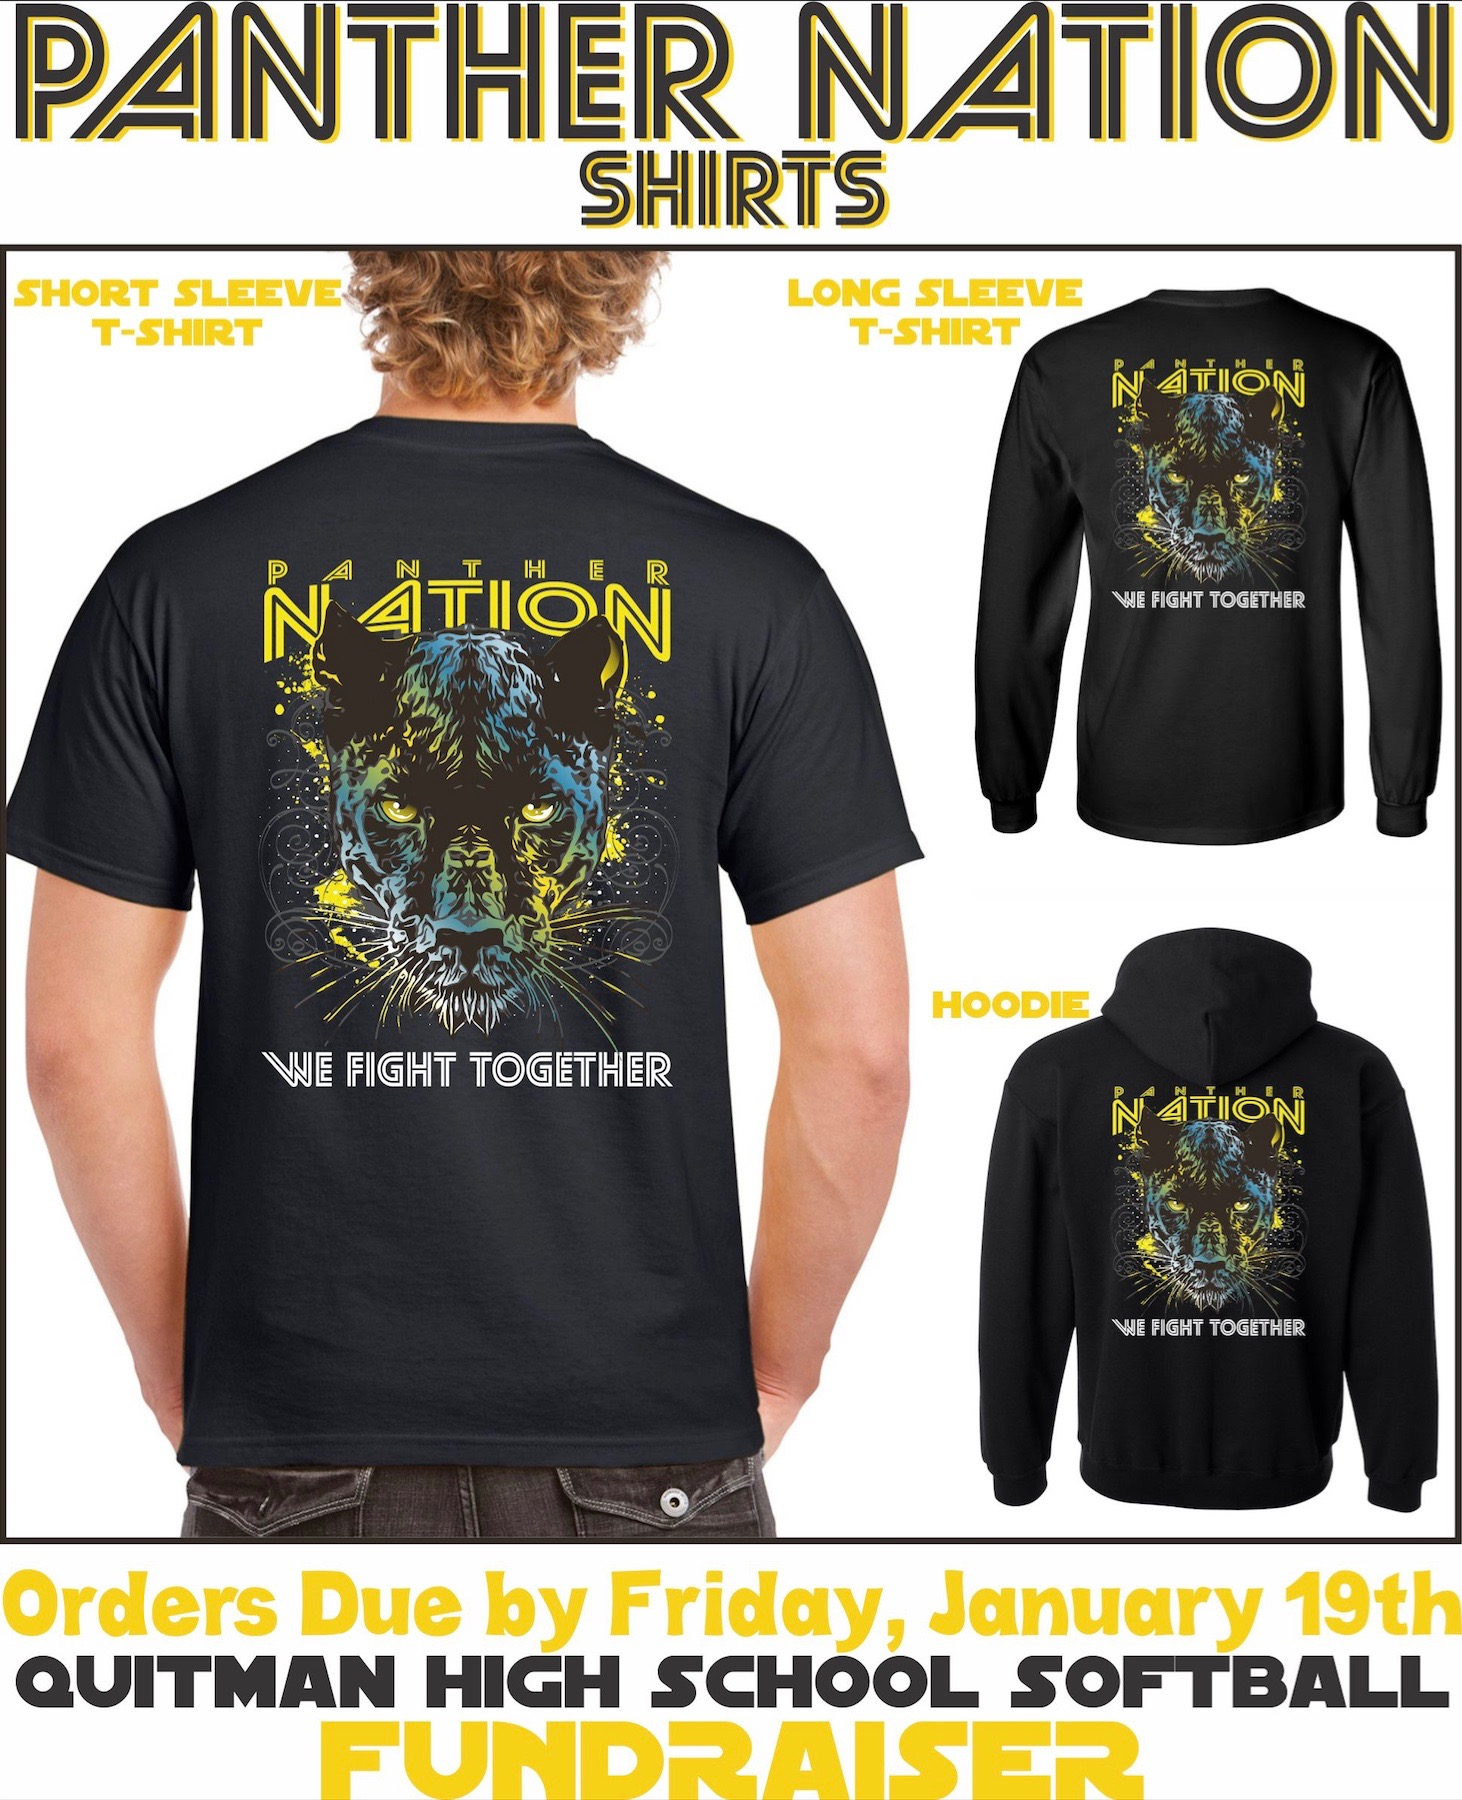 Photo of shirt being sold as a fundraiser for Panther Softball.